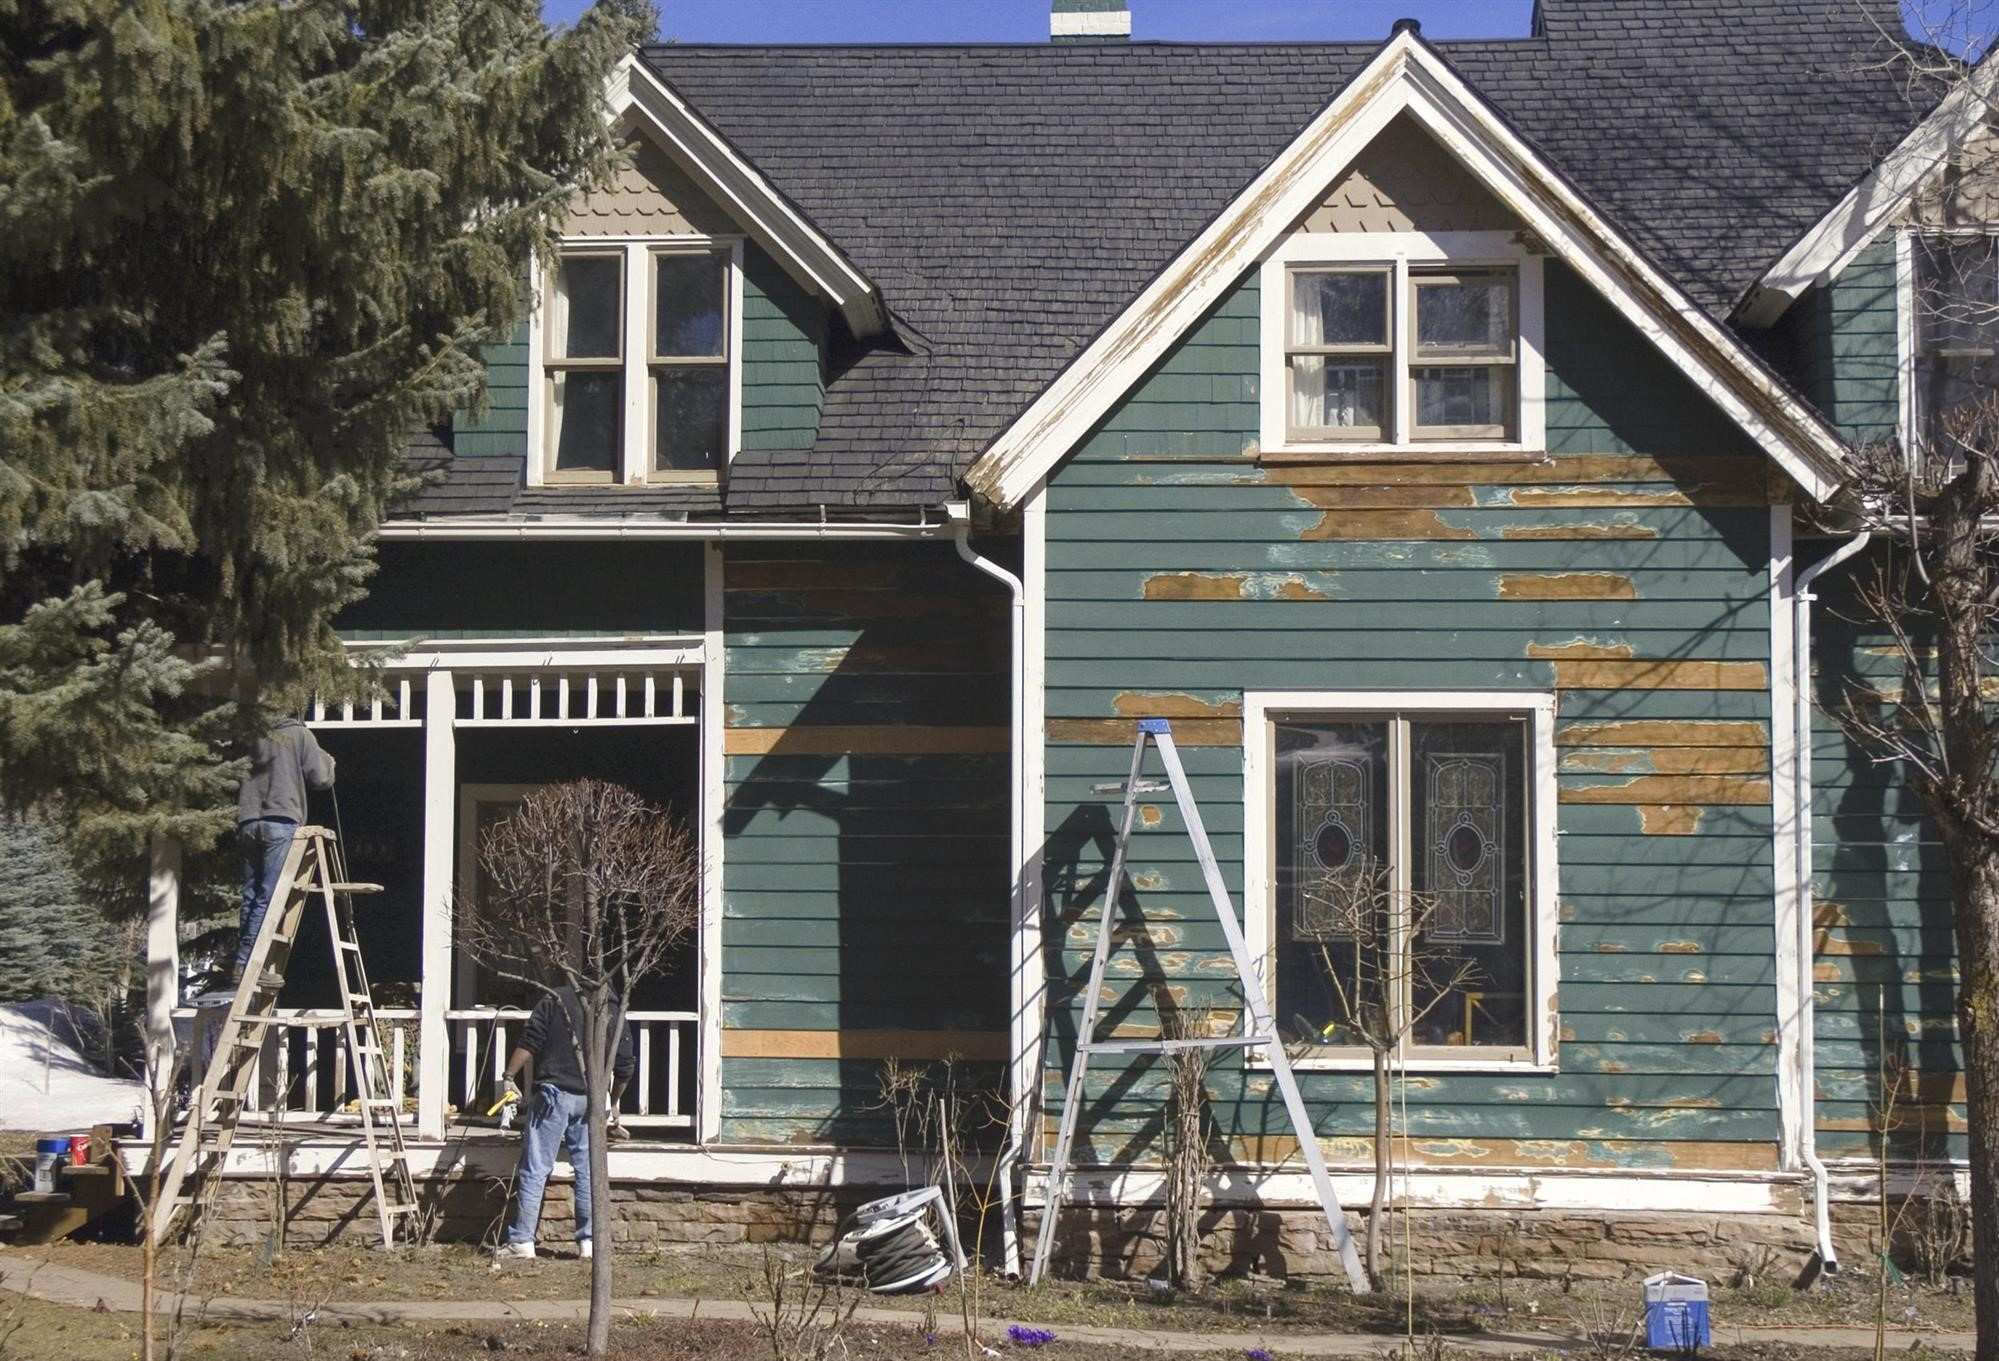 How to buy a fixer upper - Part Of Buying A Fixer Upper Home